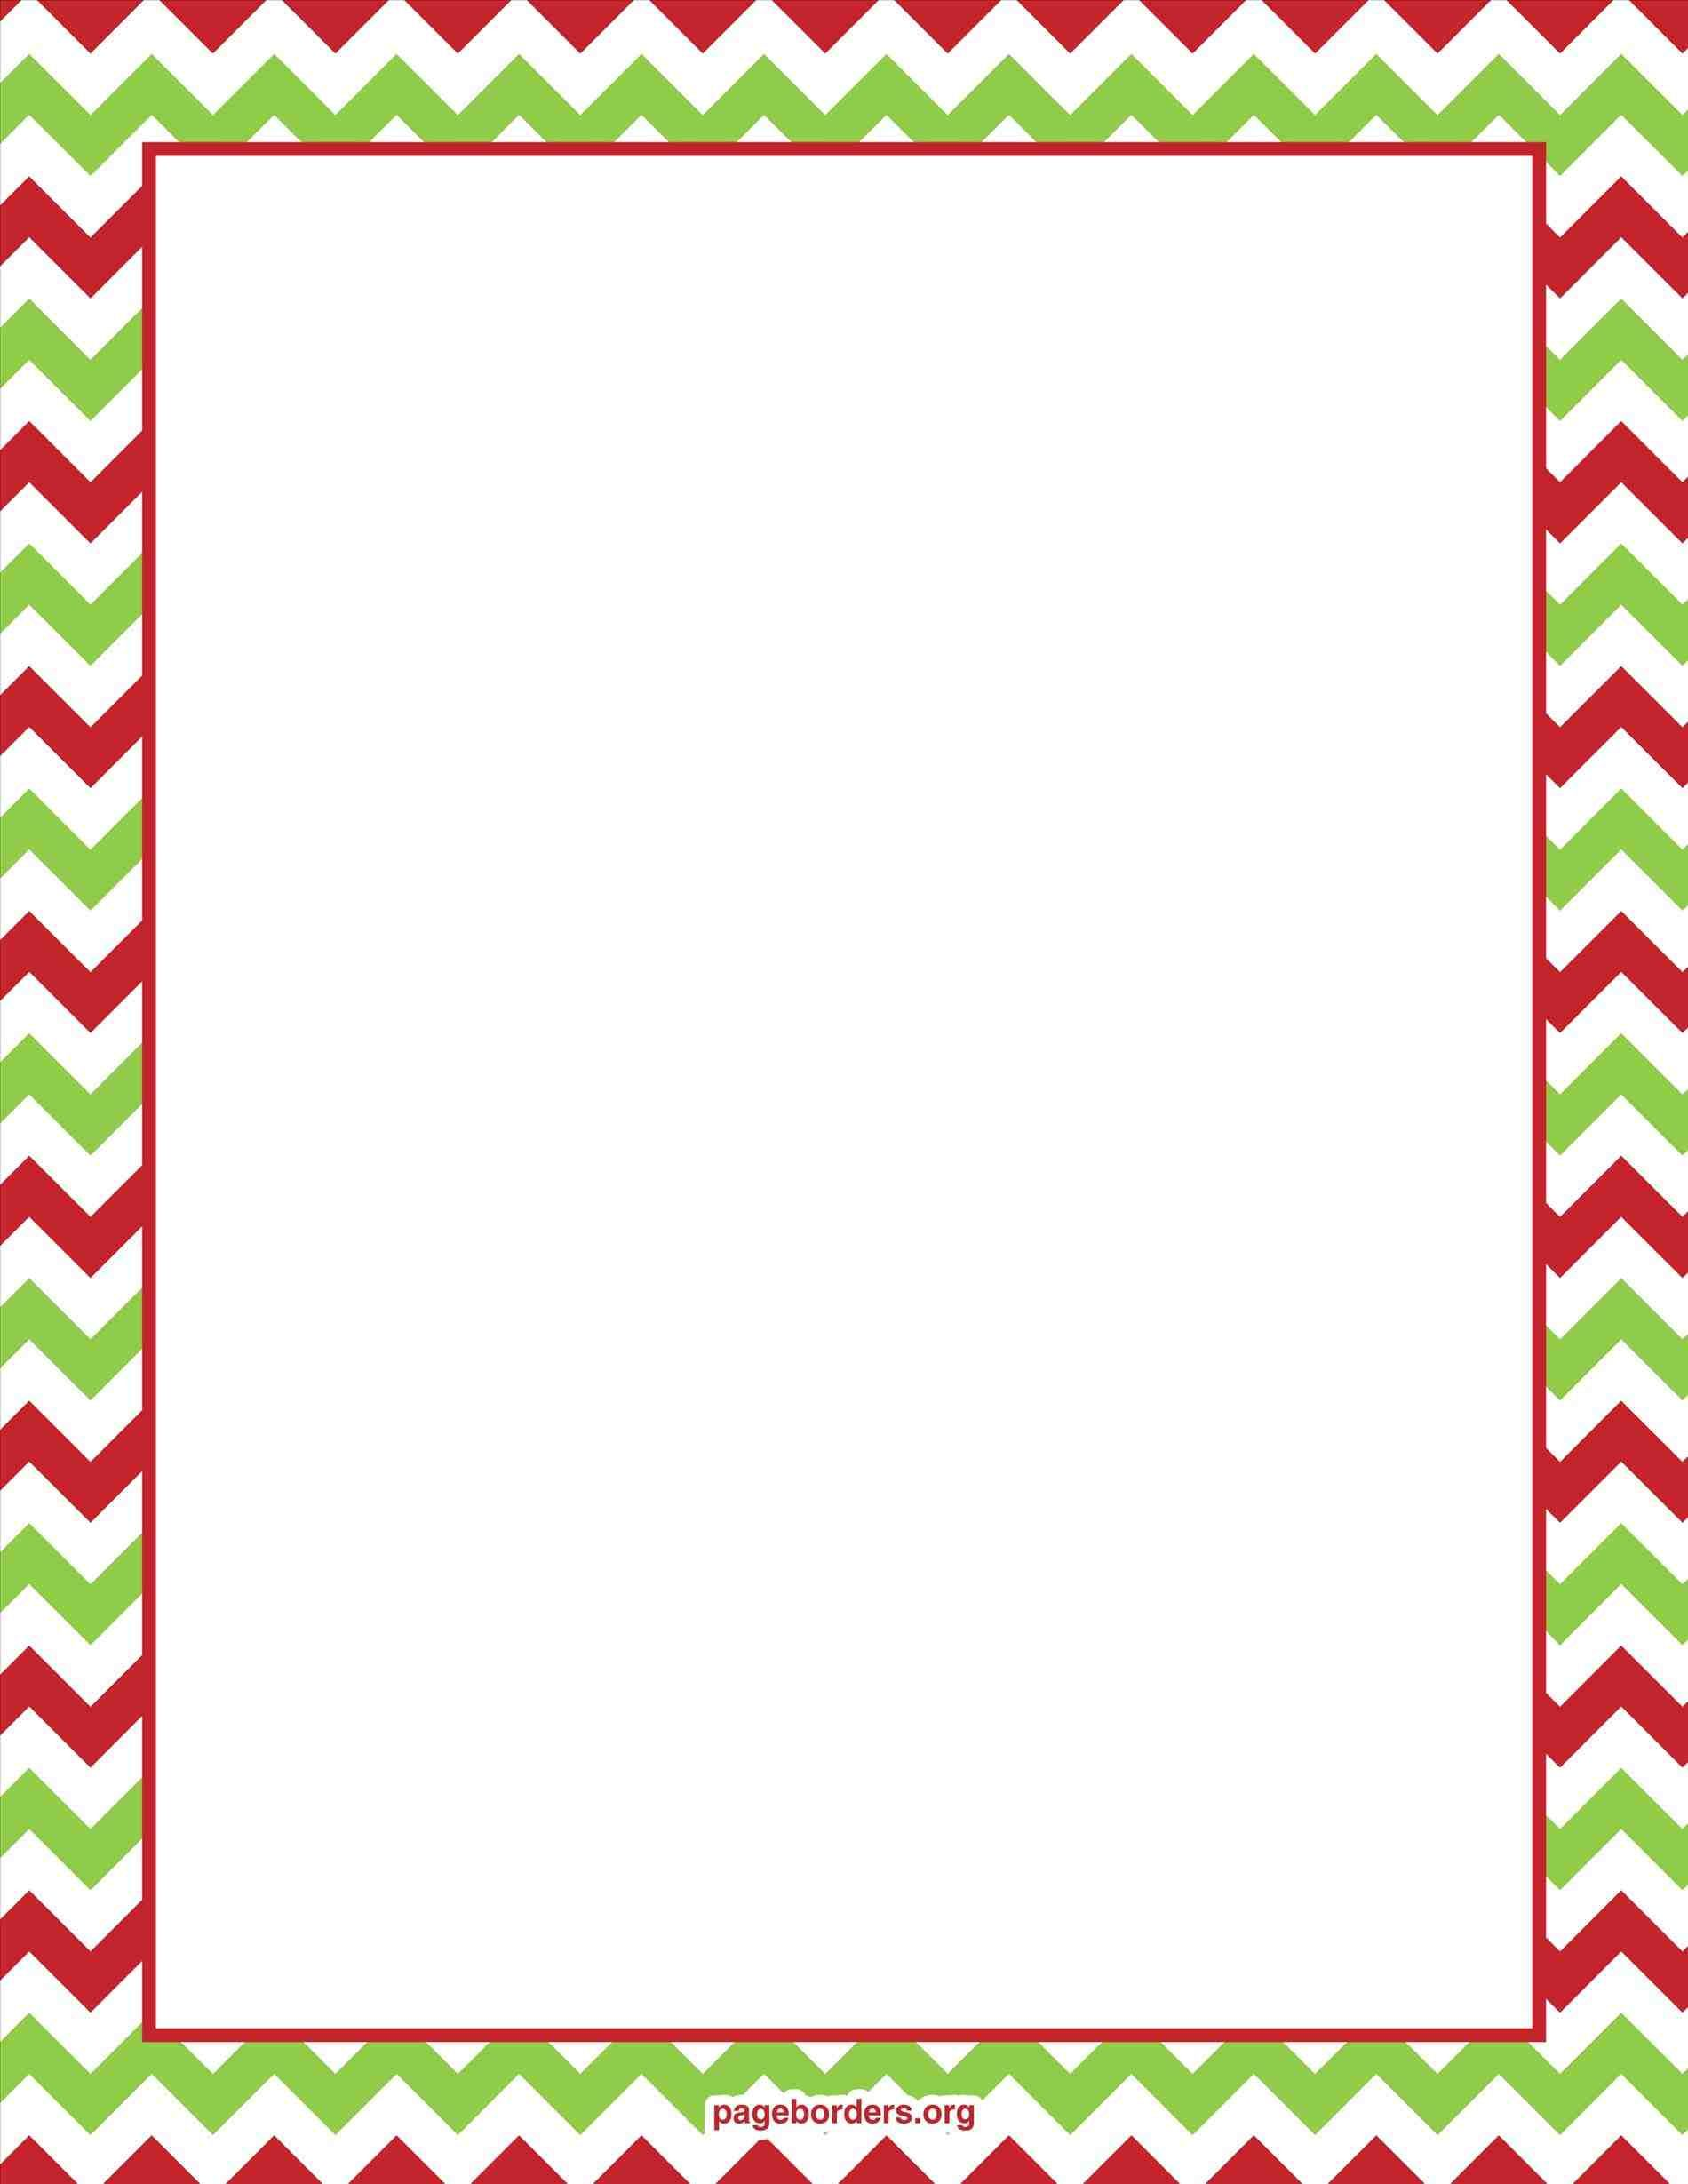 New christmas borders for word documents free download at.